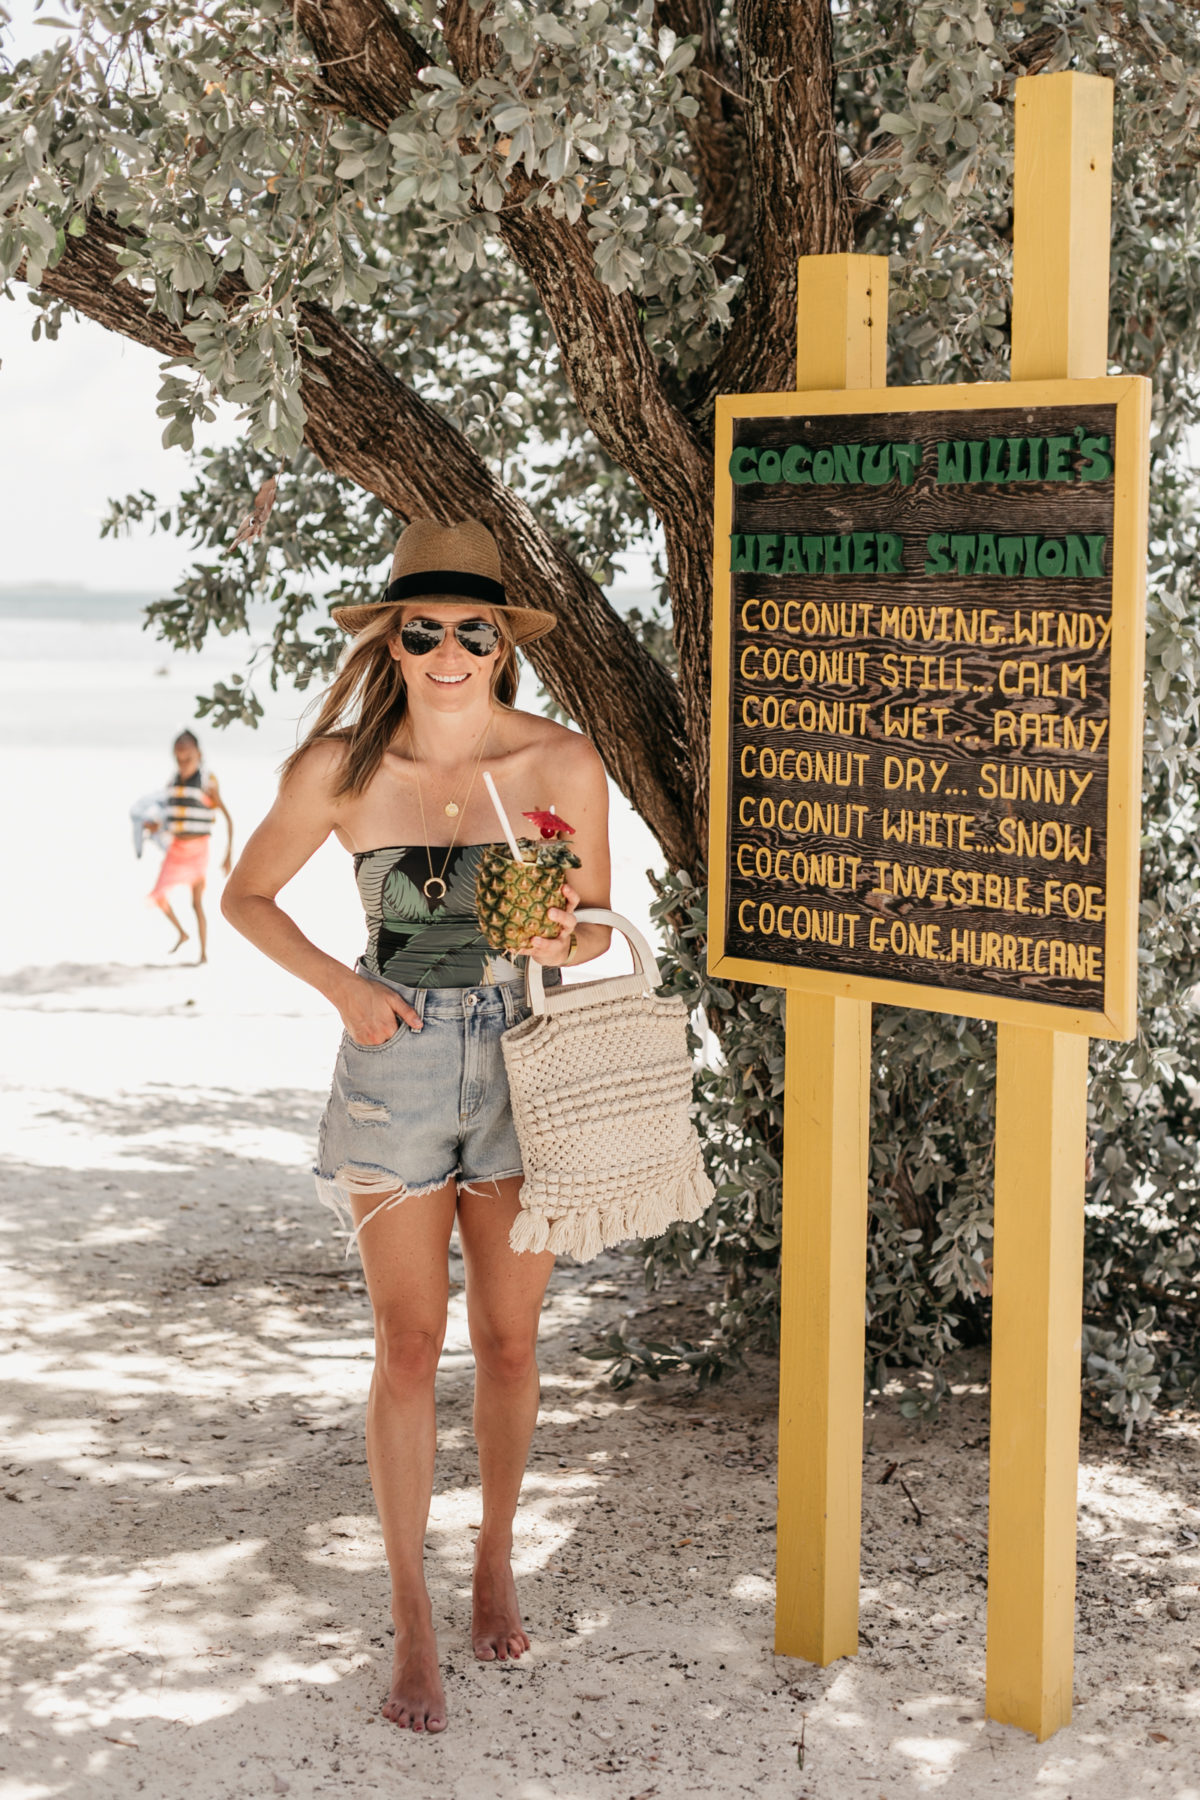 ROYAL CARIBBEAN CRUISE & A Cruise Outfit: Palm Print One Piece Swimsuit // Distressed Denim Shorts // Macrame Beach Bag // Gold Crescent / Coin Necklace // Straw Hat // Aviator Sunnies